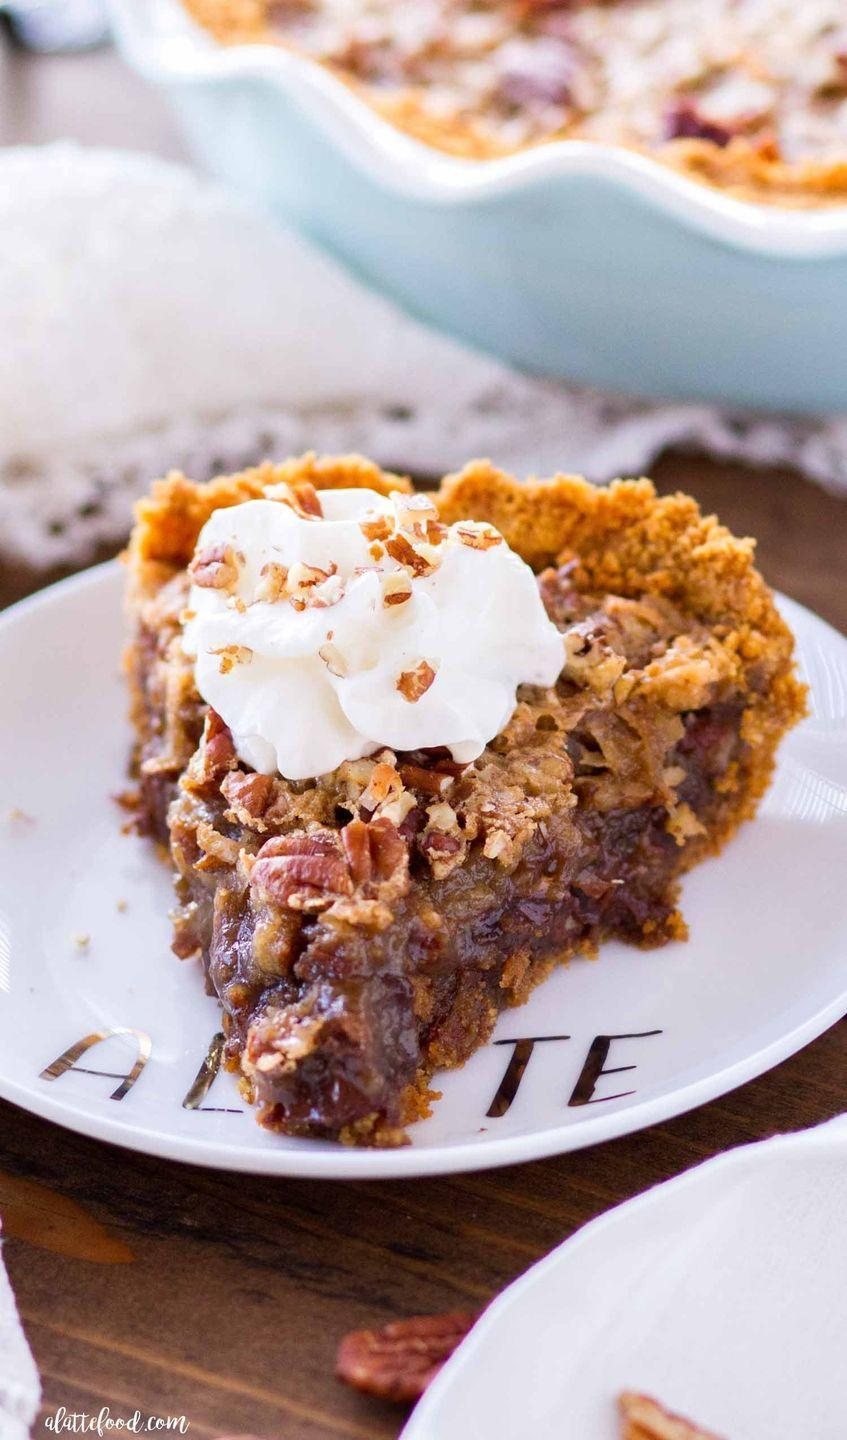 """<p>Sorry, Grandma—this pecan pie puts all other recipes to shame. The addition of chocolate and coconut is irresistible.</p><p><strong>Get the recipe at <a href=""""https://www.alattefood.com/german-chocolate-pecan-pie-graham-cracker-crust/"""" rel=""""nofollow noopener"""" target=""""_blank"""" data-ylk=""""slk:A Latte Food"""" class=""""link rapid-noclick-resp"""">A Latte Food</a>.</strong> </p>"""